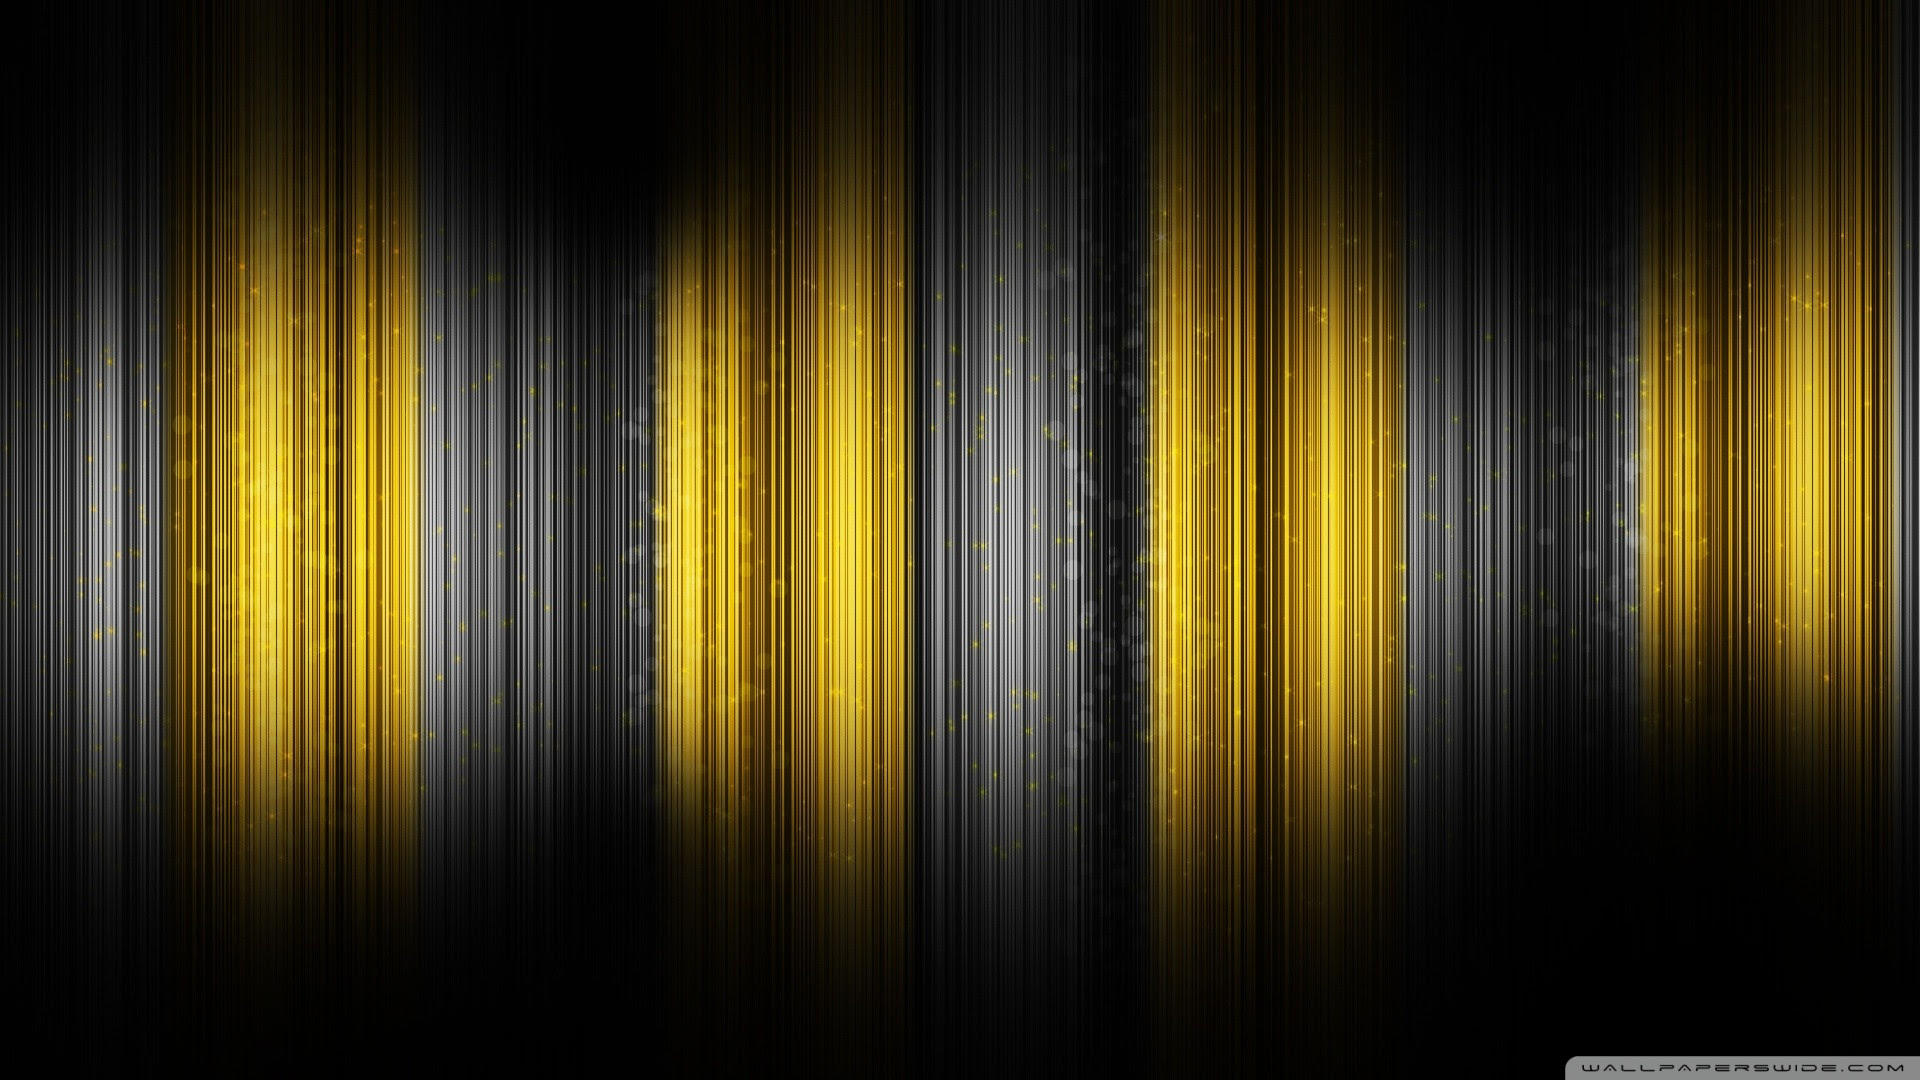 Unduh 55+ Wallpaper Hd Yellow And Black HD Paling Keren